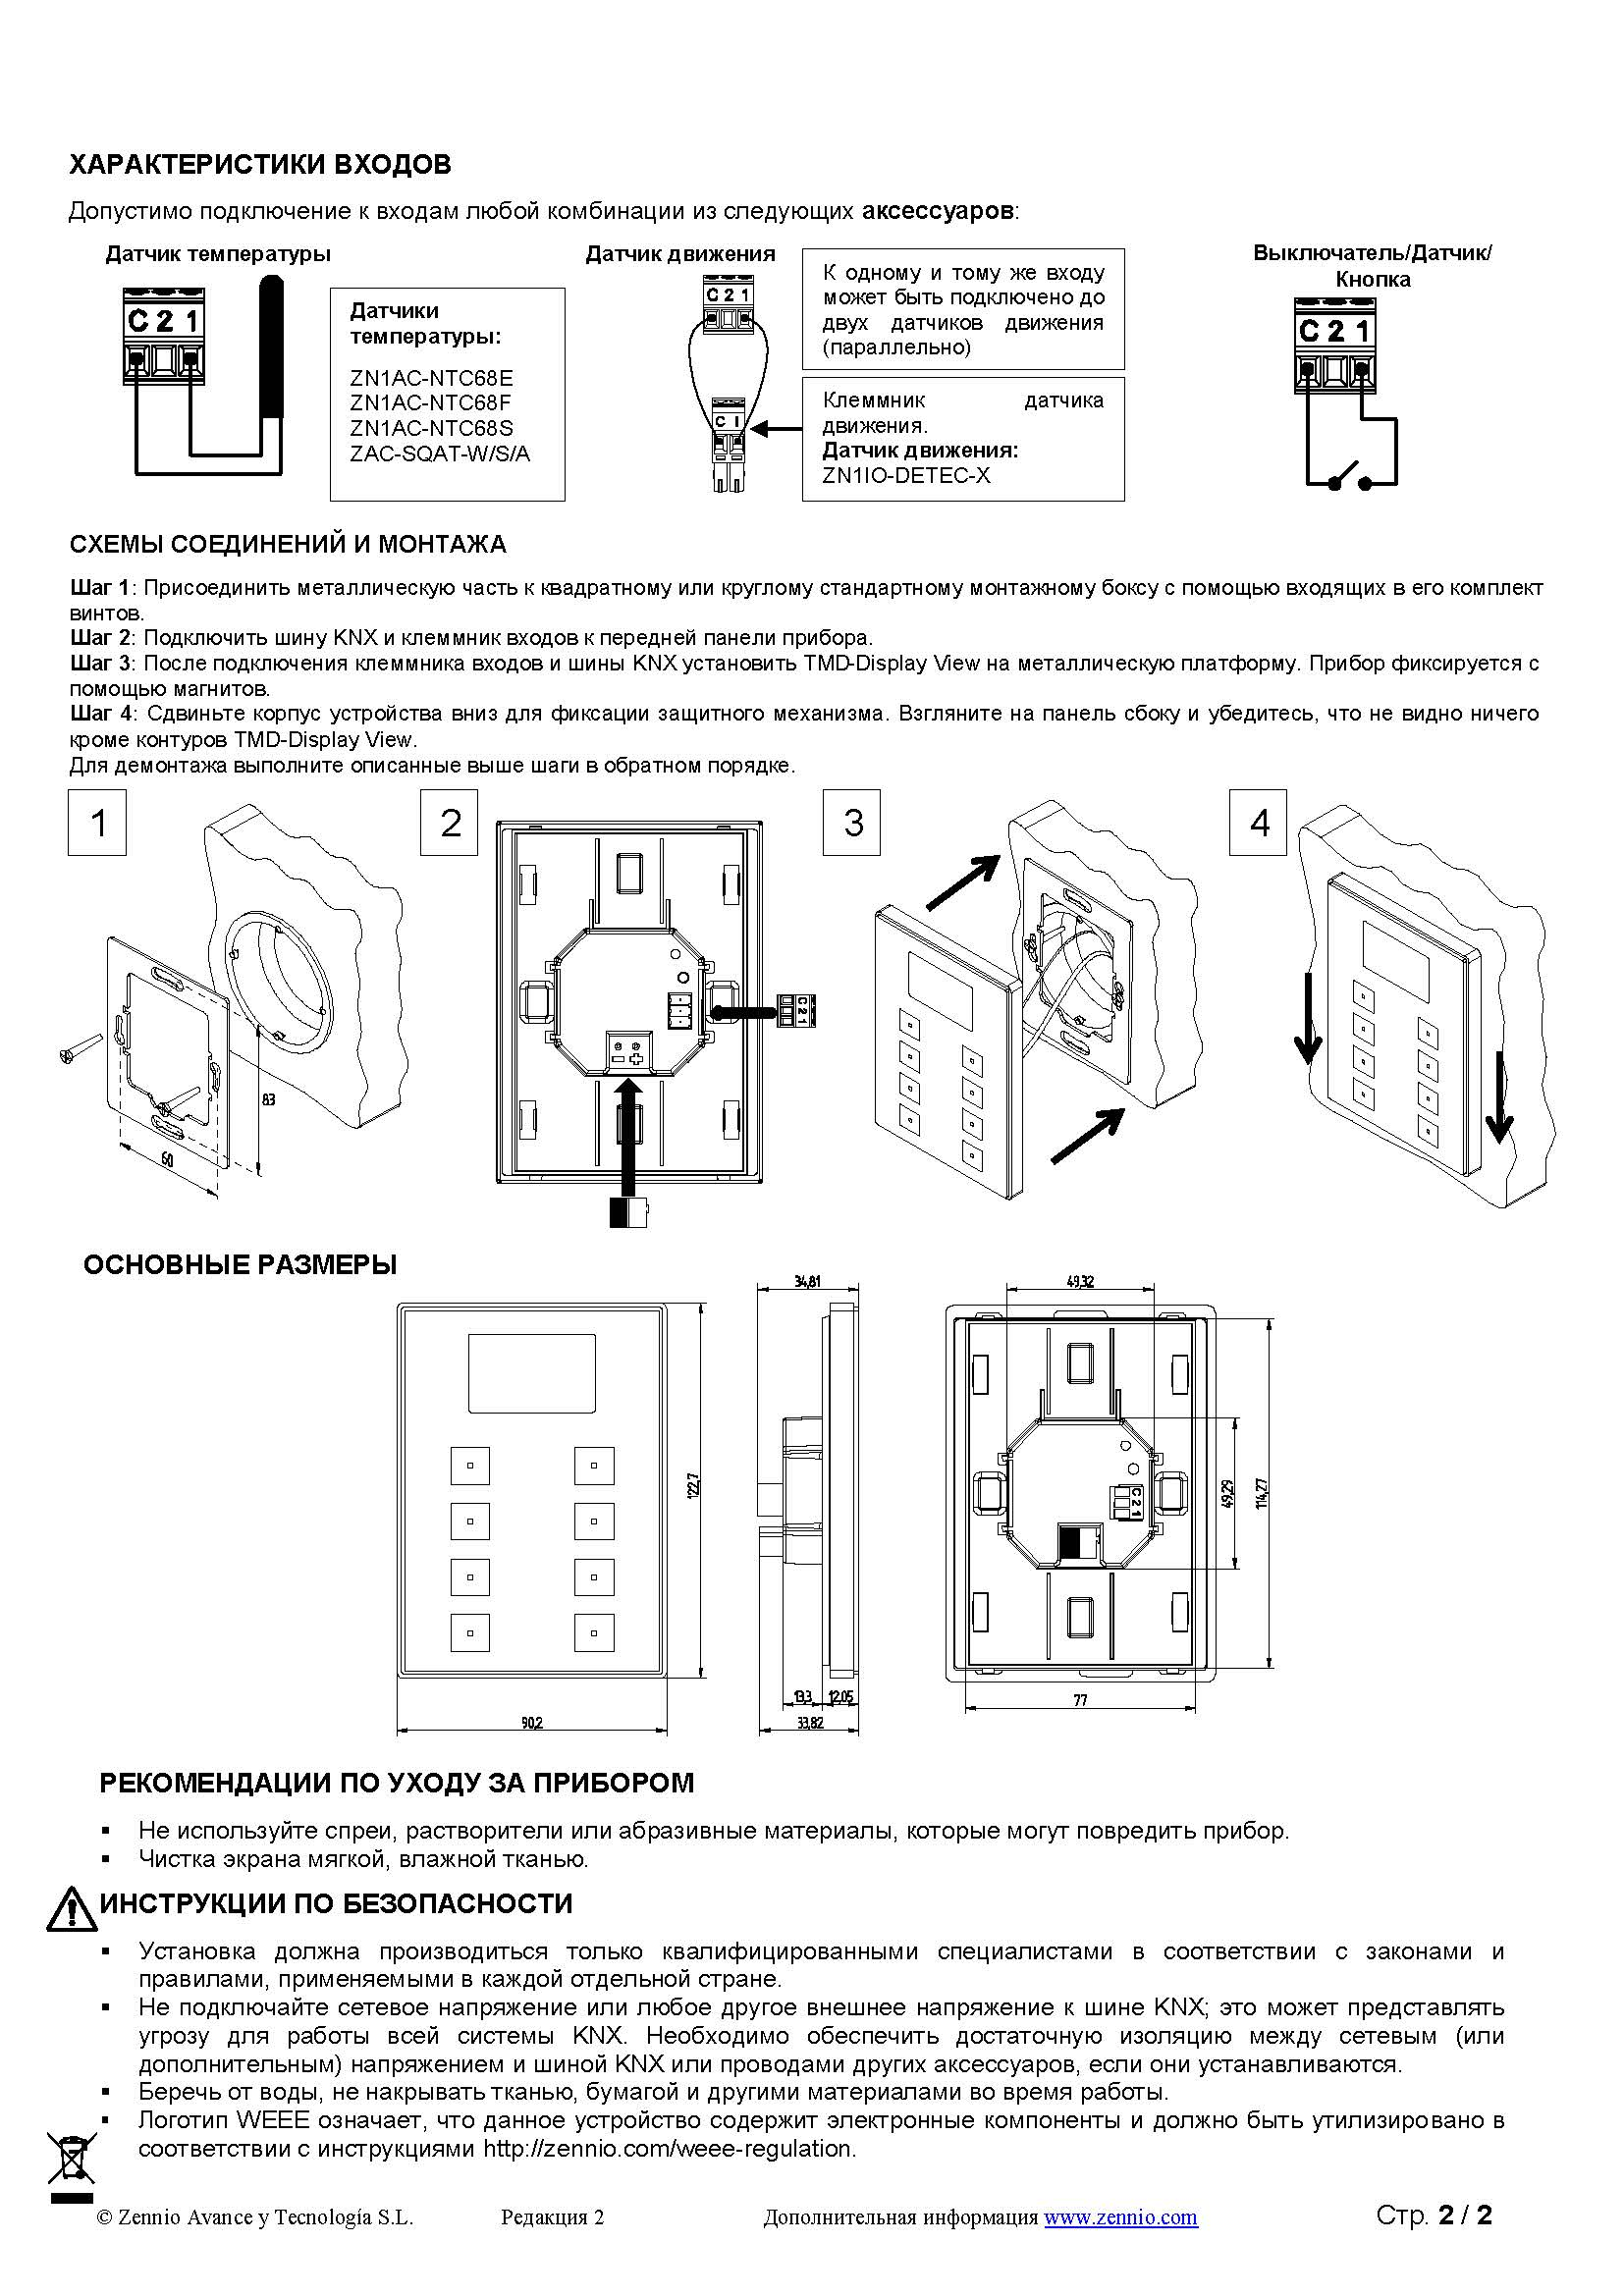 Datasheet TMD Display View RU Ed2 Page 2